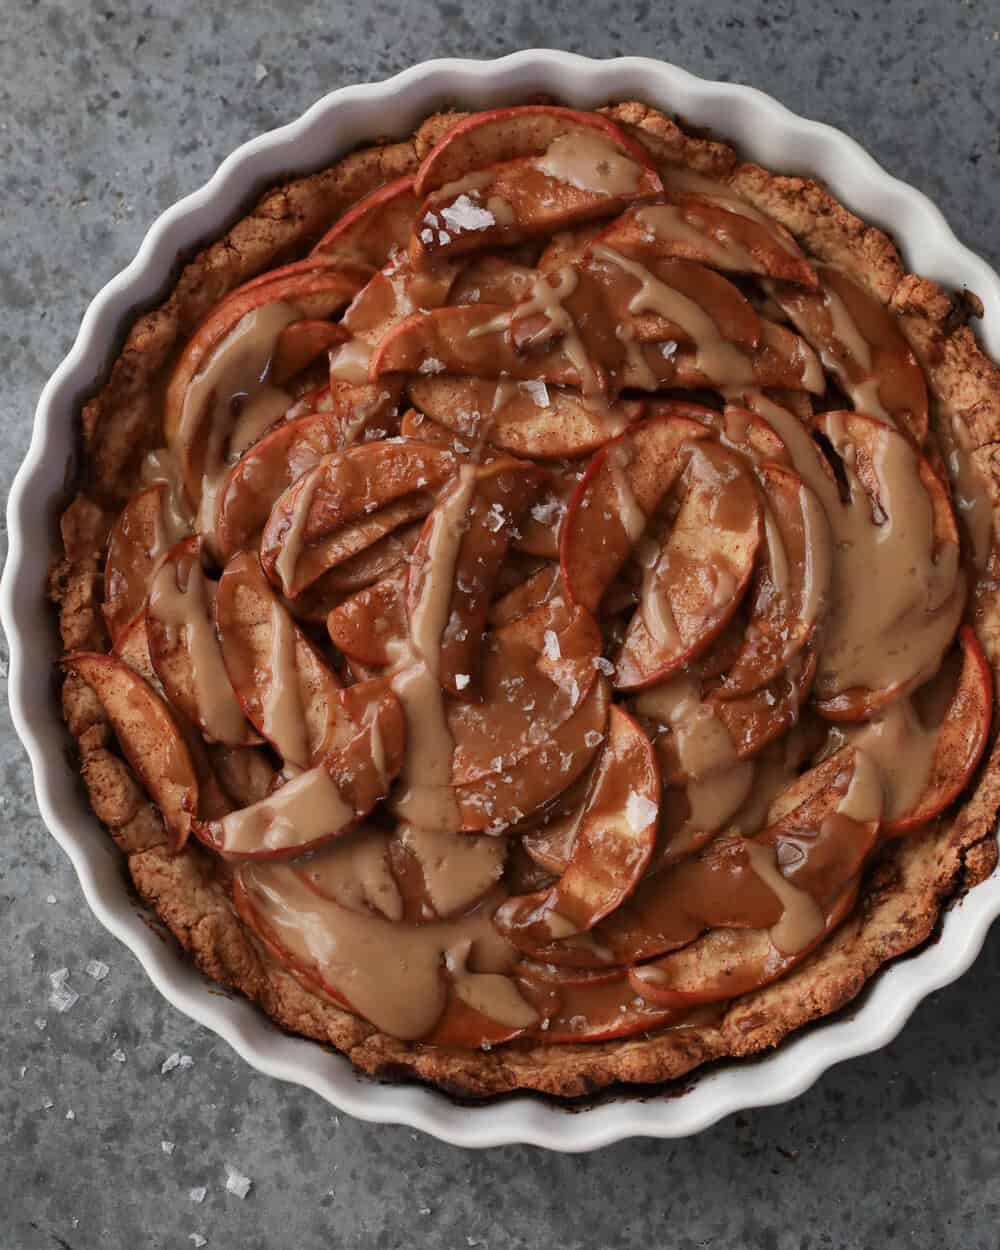 PALEO SEA SALT CARAMEL APPLE TART - INGREDIENTSFOR THE CRUST:1 1/4 cups almond flour1/2 cup arrowroot flour 3 tb coconut flour1 tsp cinnamon1/4 cup coconut sugar1/4 cup ghee, NOT melted1 eggFOR THE TOPPING:3 apples of choice (I like Fuji, but pink lady is another great option)Juice of one small lemon2 tb arrowroot flour1 tsp cinnamon1/4 nutmeg3 tb coconut sugarFOR THE GLAZE:1 can full fat coconut milk1/4 cup coconut sugar1 tsp vanilla extract1/4 tsp sea salt